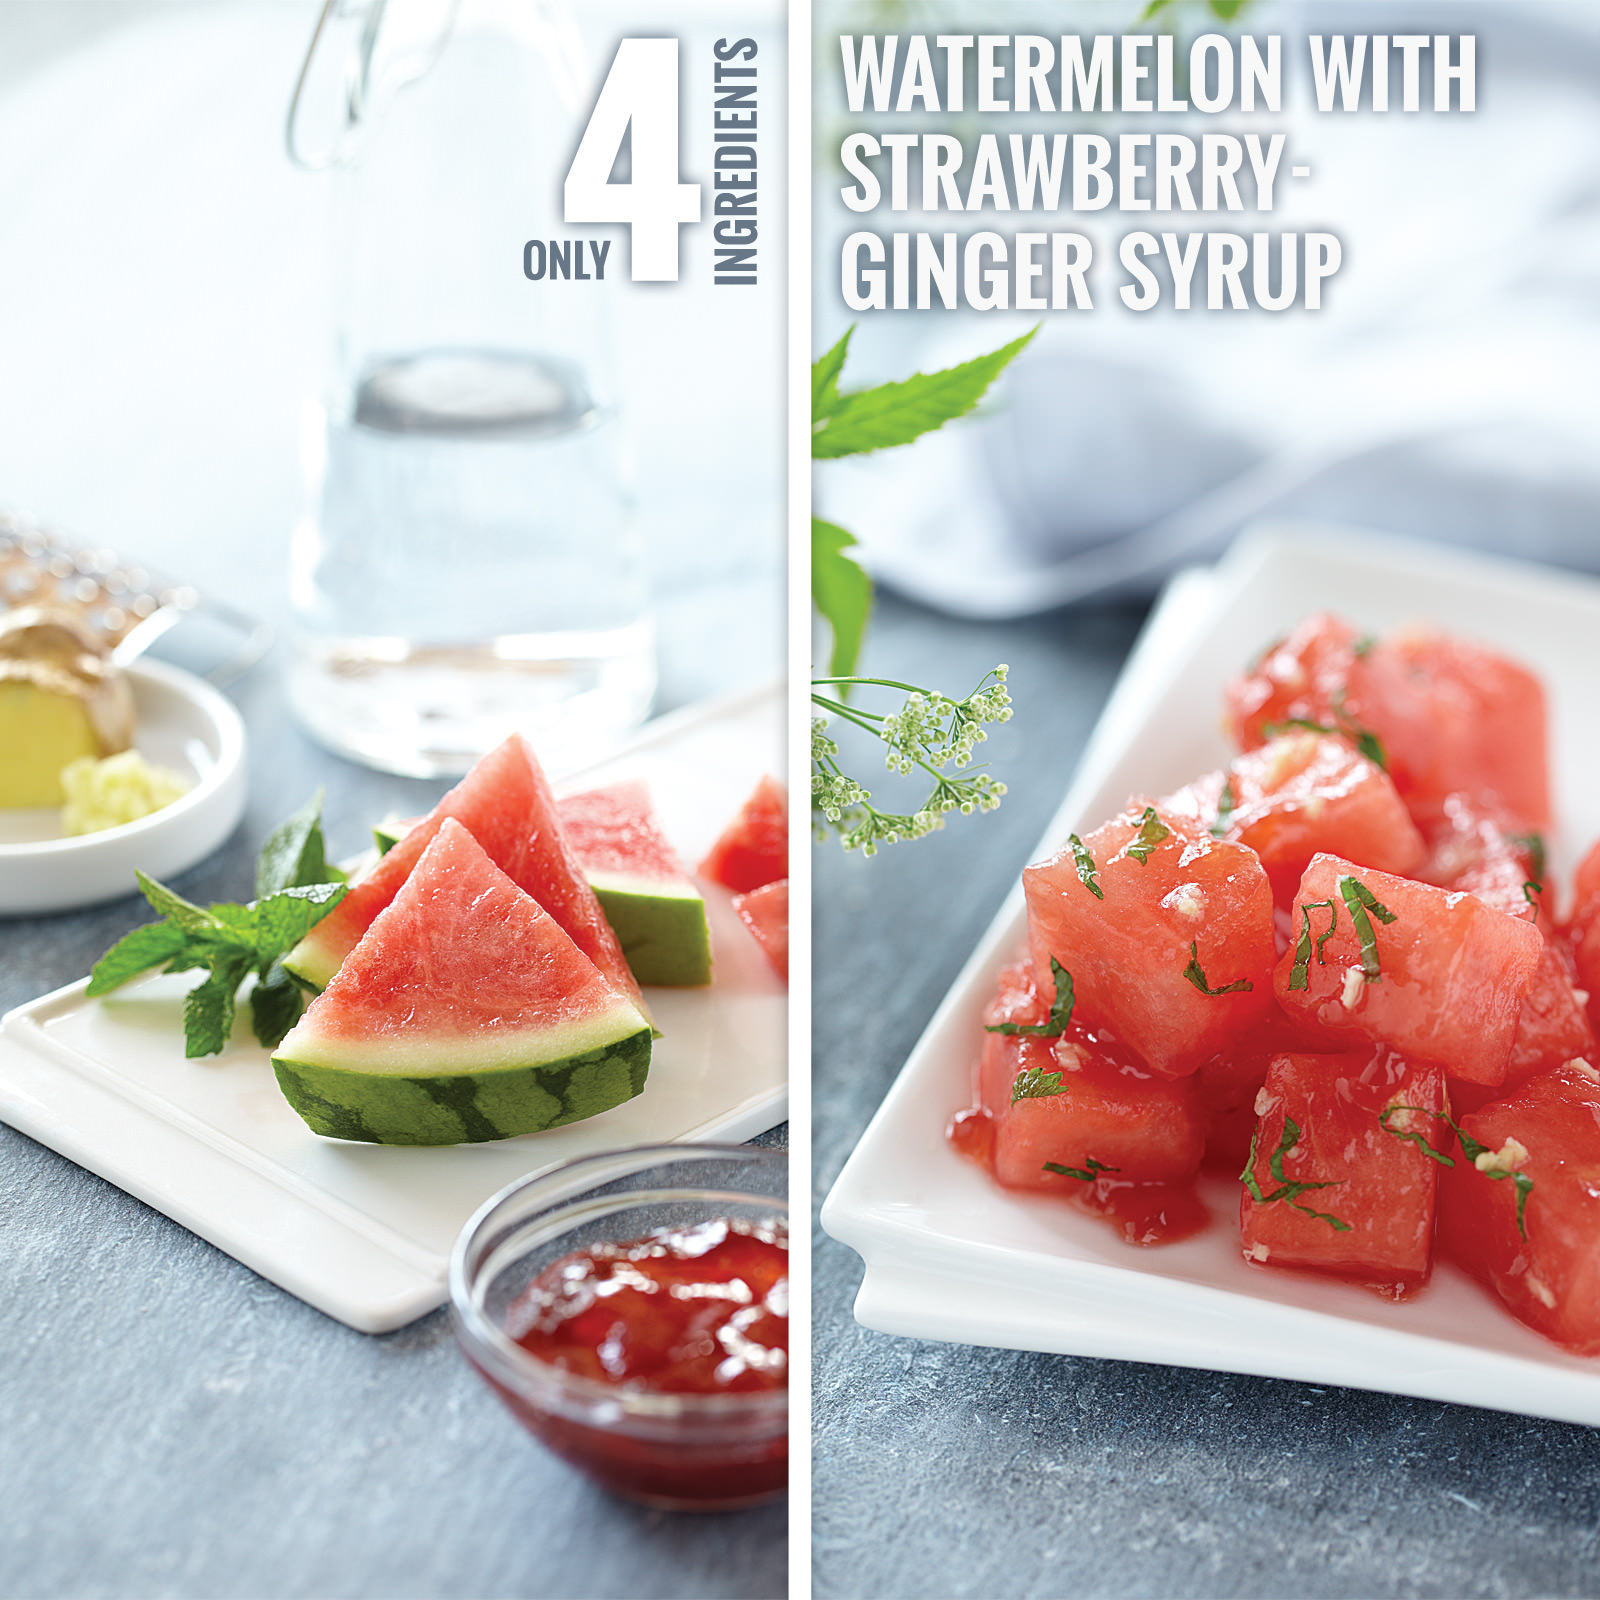 Watermelon with Strawberry-Ginger Syrup - Smucker's®